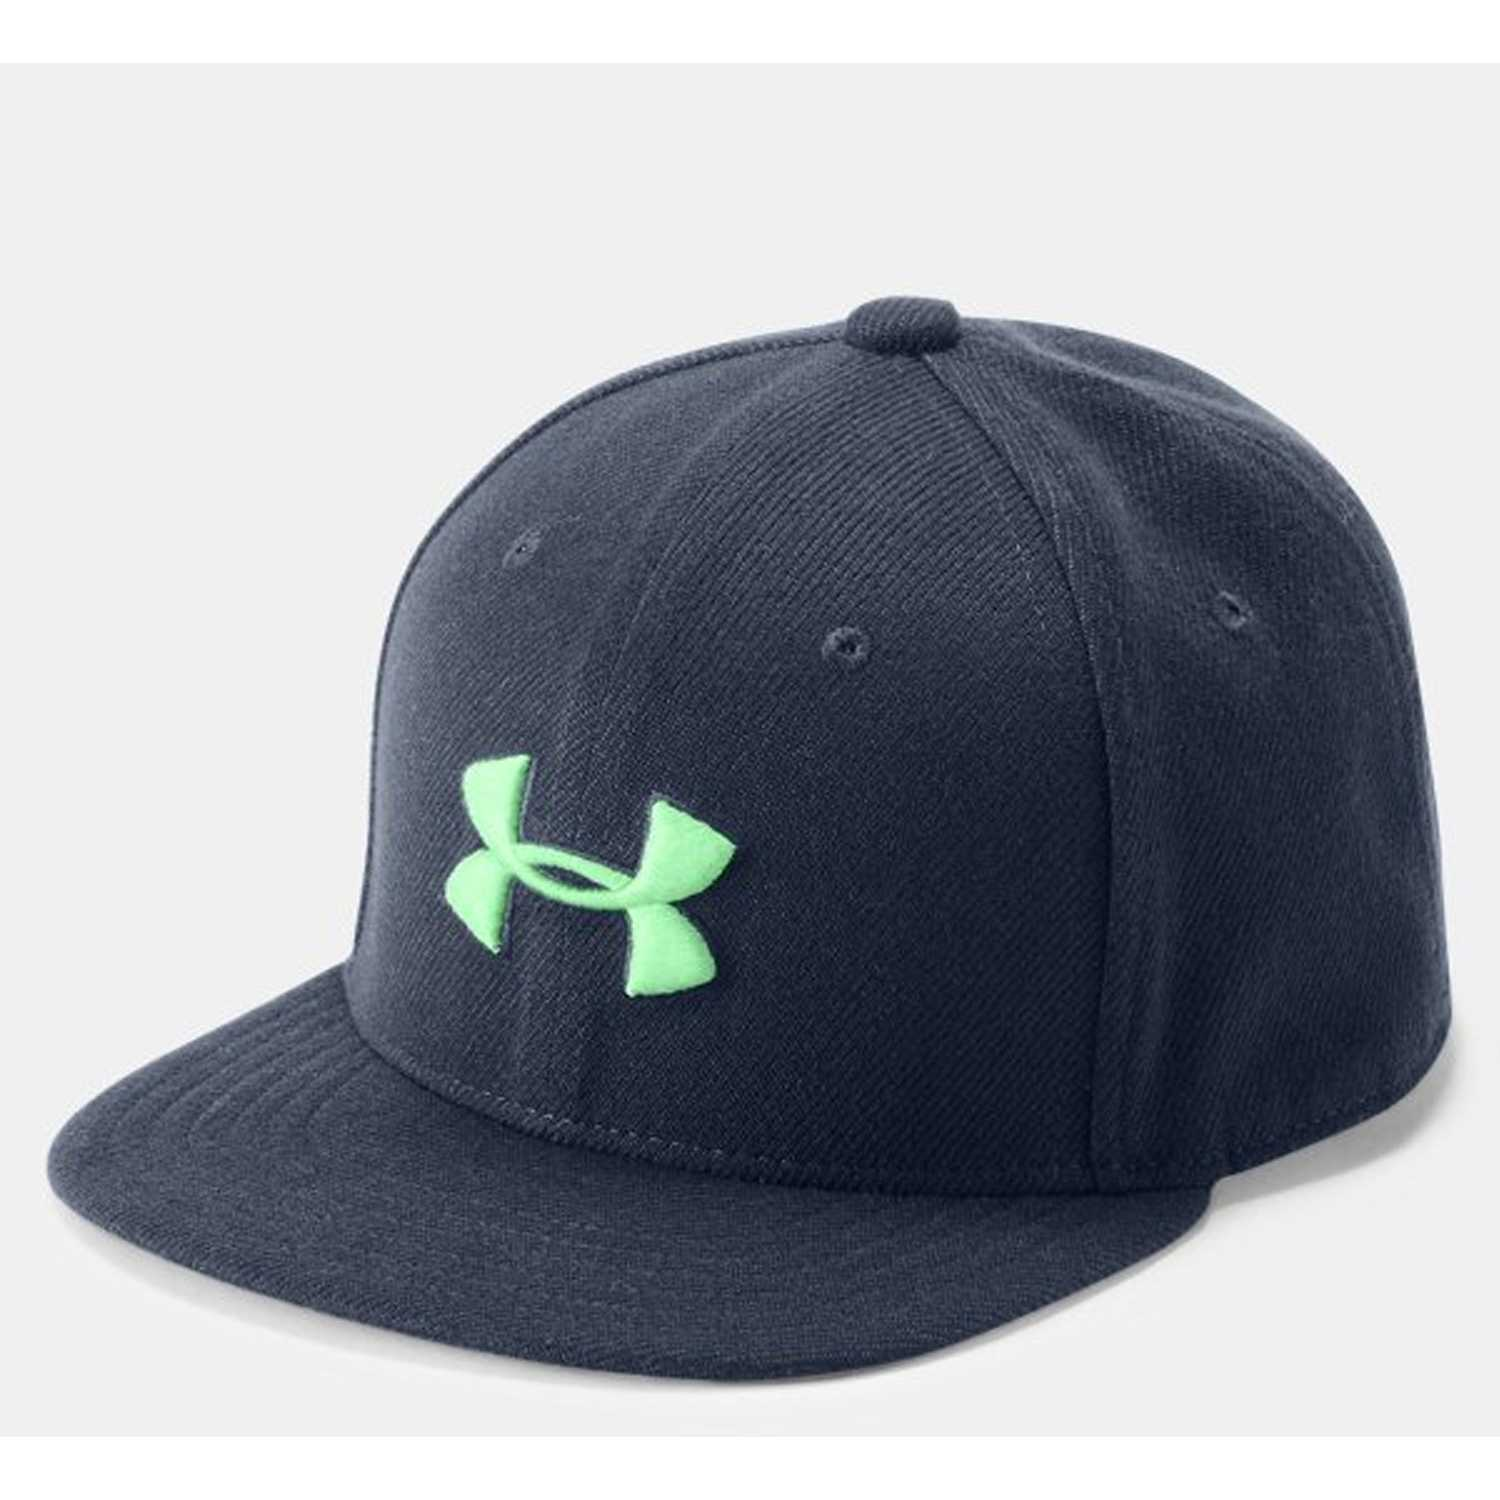 Gorro de Niño Under Armour Acero boy's huddle snapback 2.0-nvy